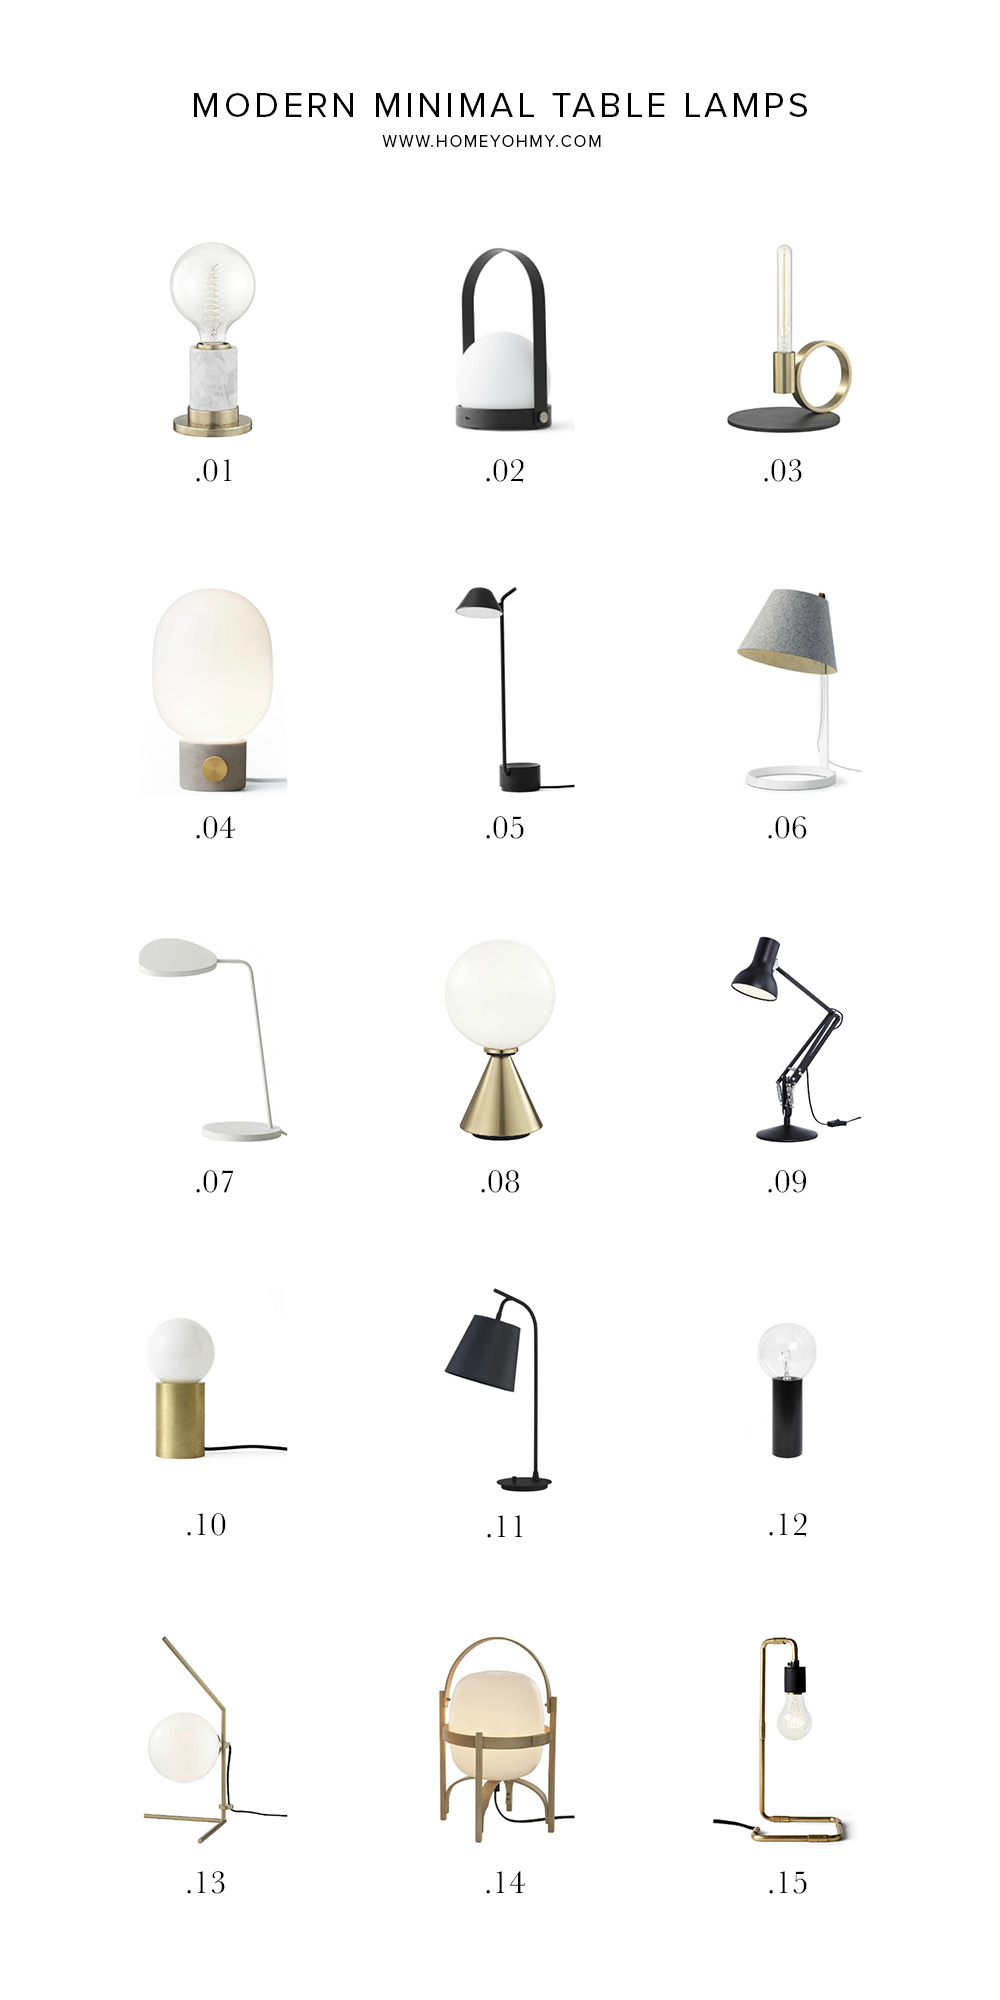 15 Modern Minimal Table Lamps Homey Oh My